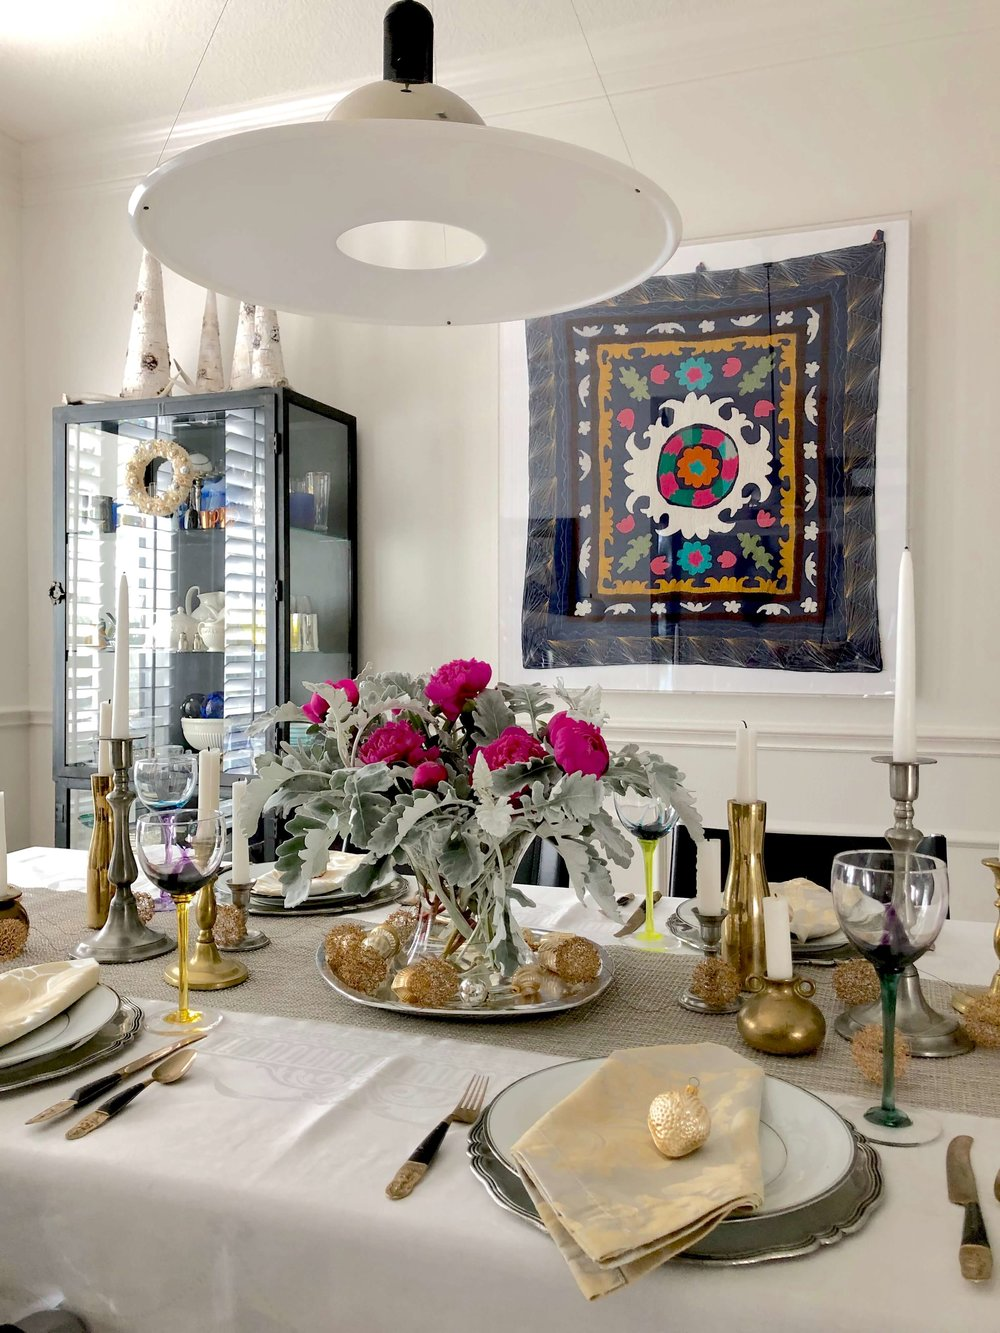 Tabletop with trending taper candles | Carla Aston Interior Designer, Tori Aston Photographer #tapercandles #candlesticks #interiordesigntrends #trending